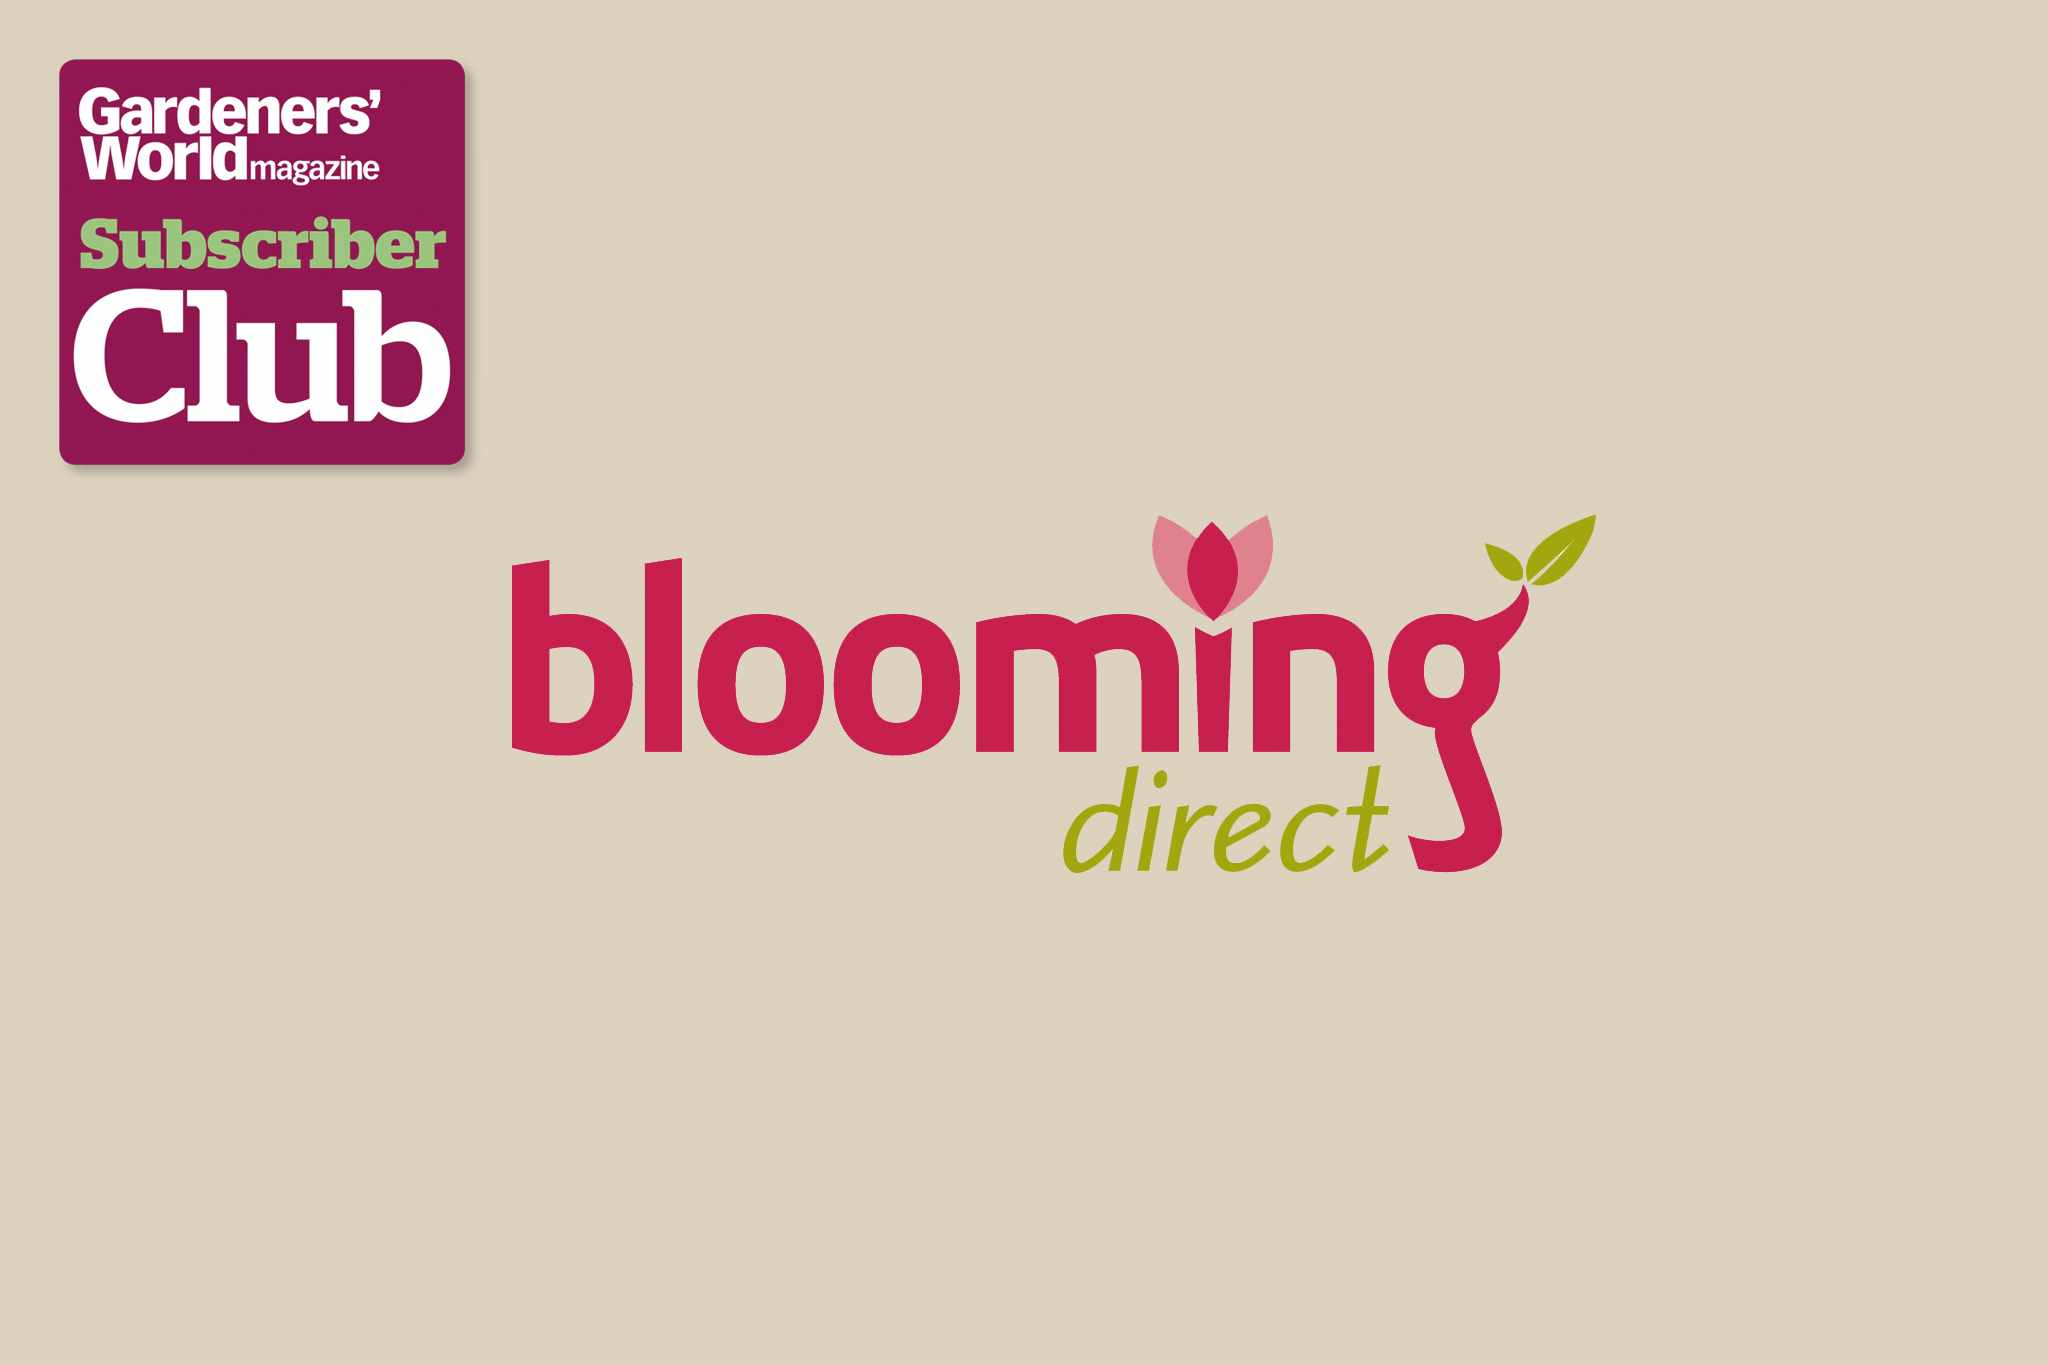 Blooming Direct BBC Gardeners' World Magazine Subscriber Club discount